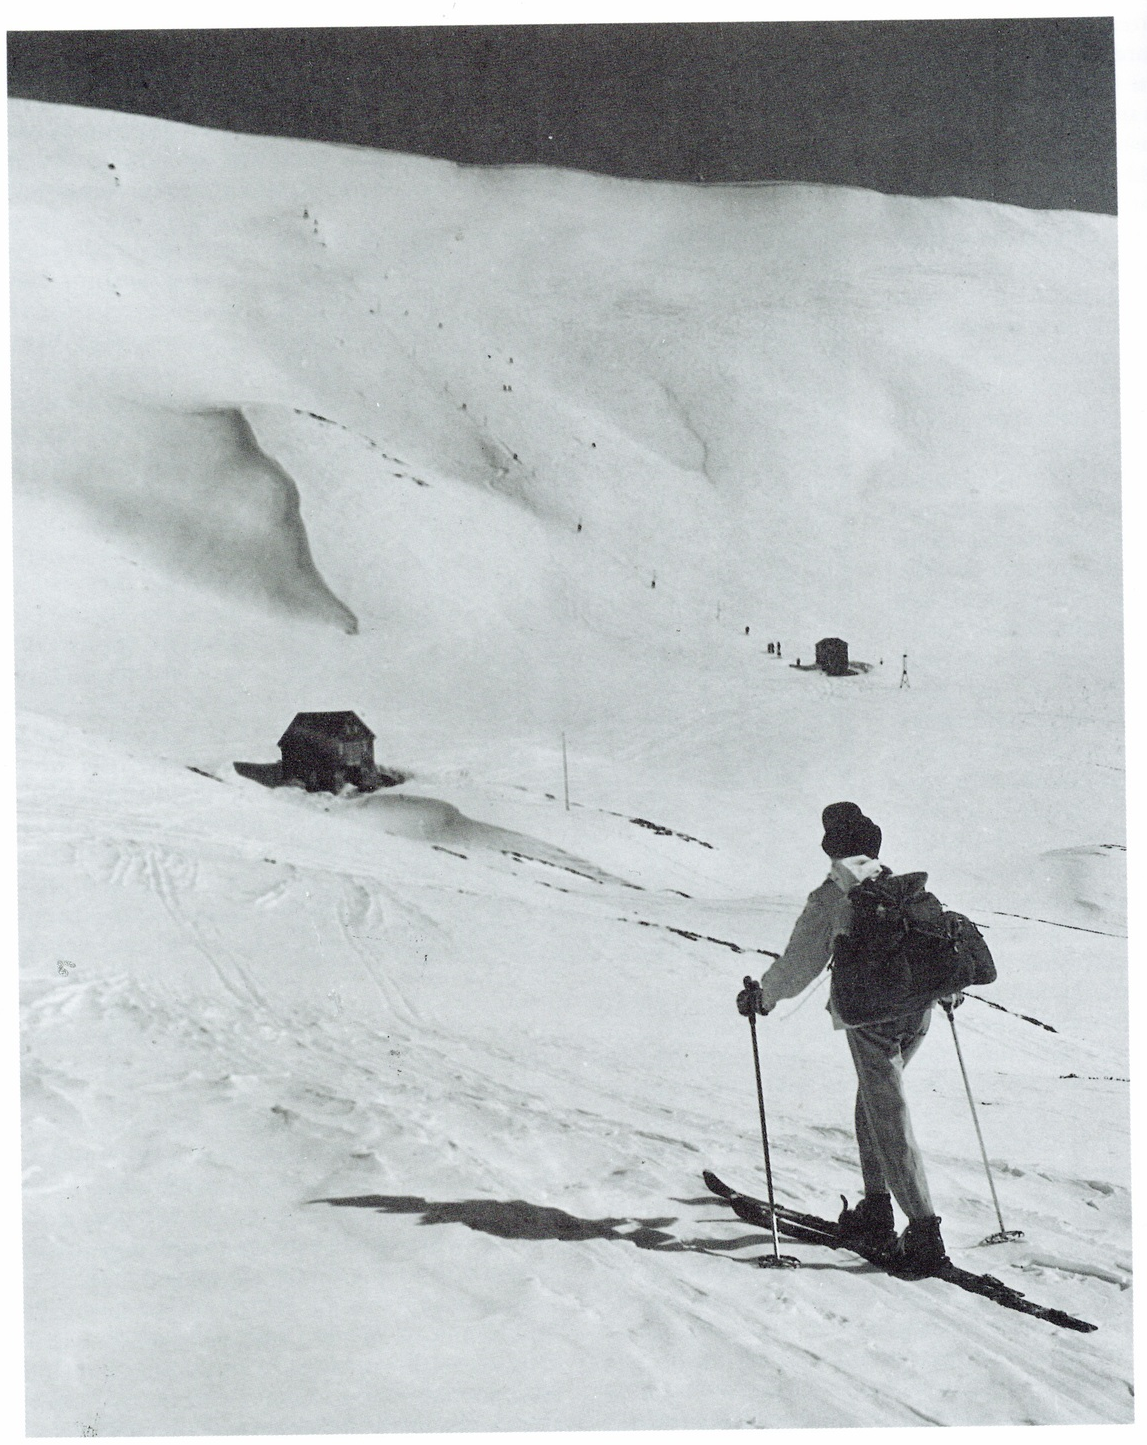 Two of the Ski Tourers Association's Main Range developments: Kunama Lodge and the Northcote Tow House.                                                Photo:Baglin, published in Rick Walkom. Skiing off the roof: the kosciusko Chalet and it's place in the history of the Australian snowfields. [1st ed.], Arlberg Press, 1991.